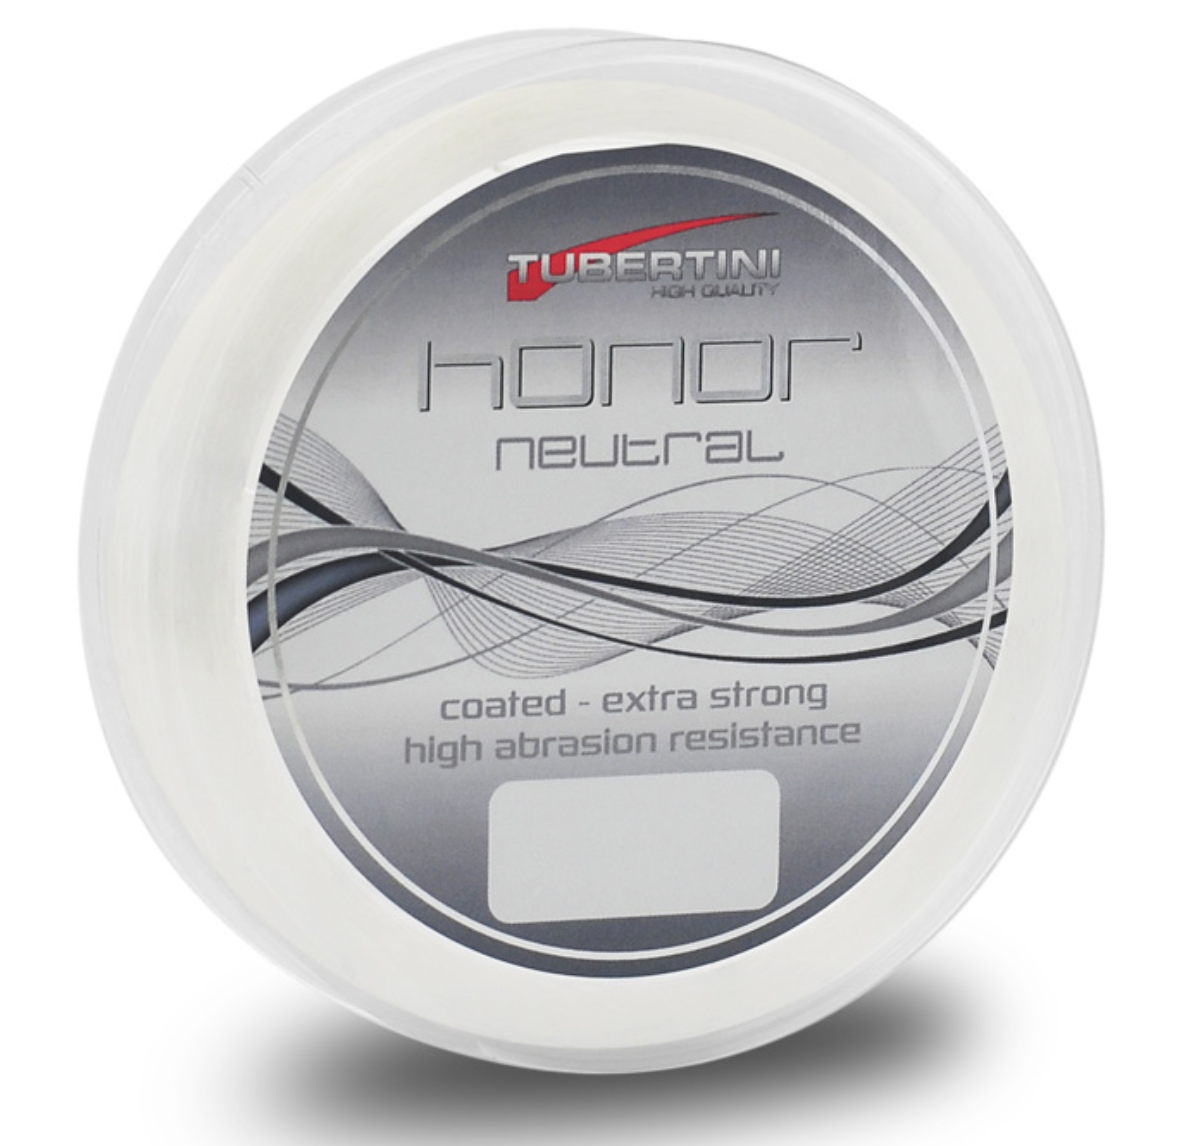 Filo Honor Neutral 150 mt - TUBERTINI